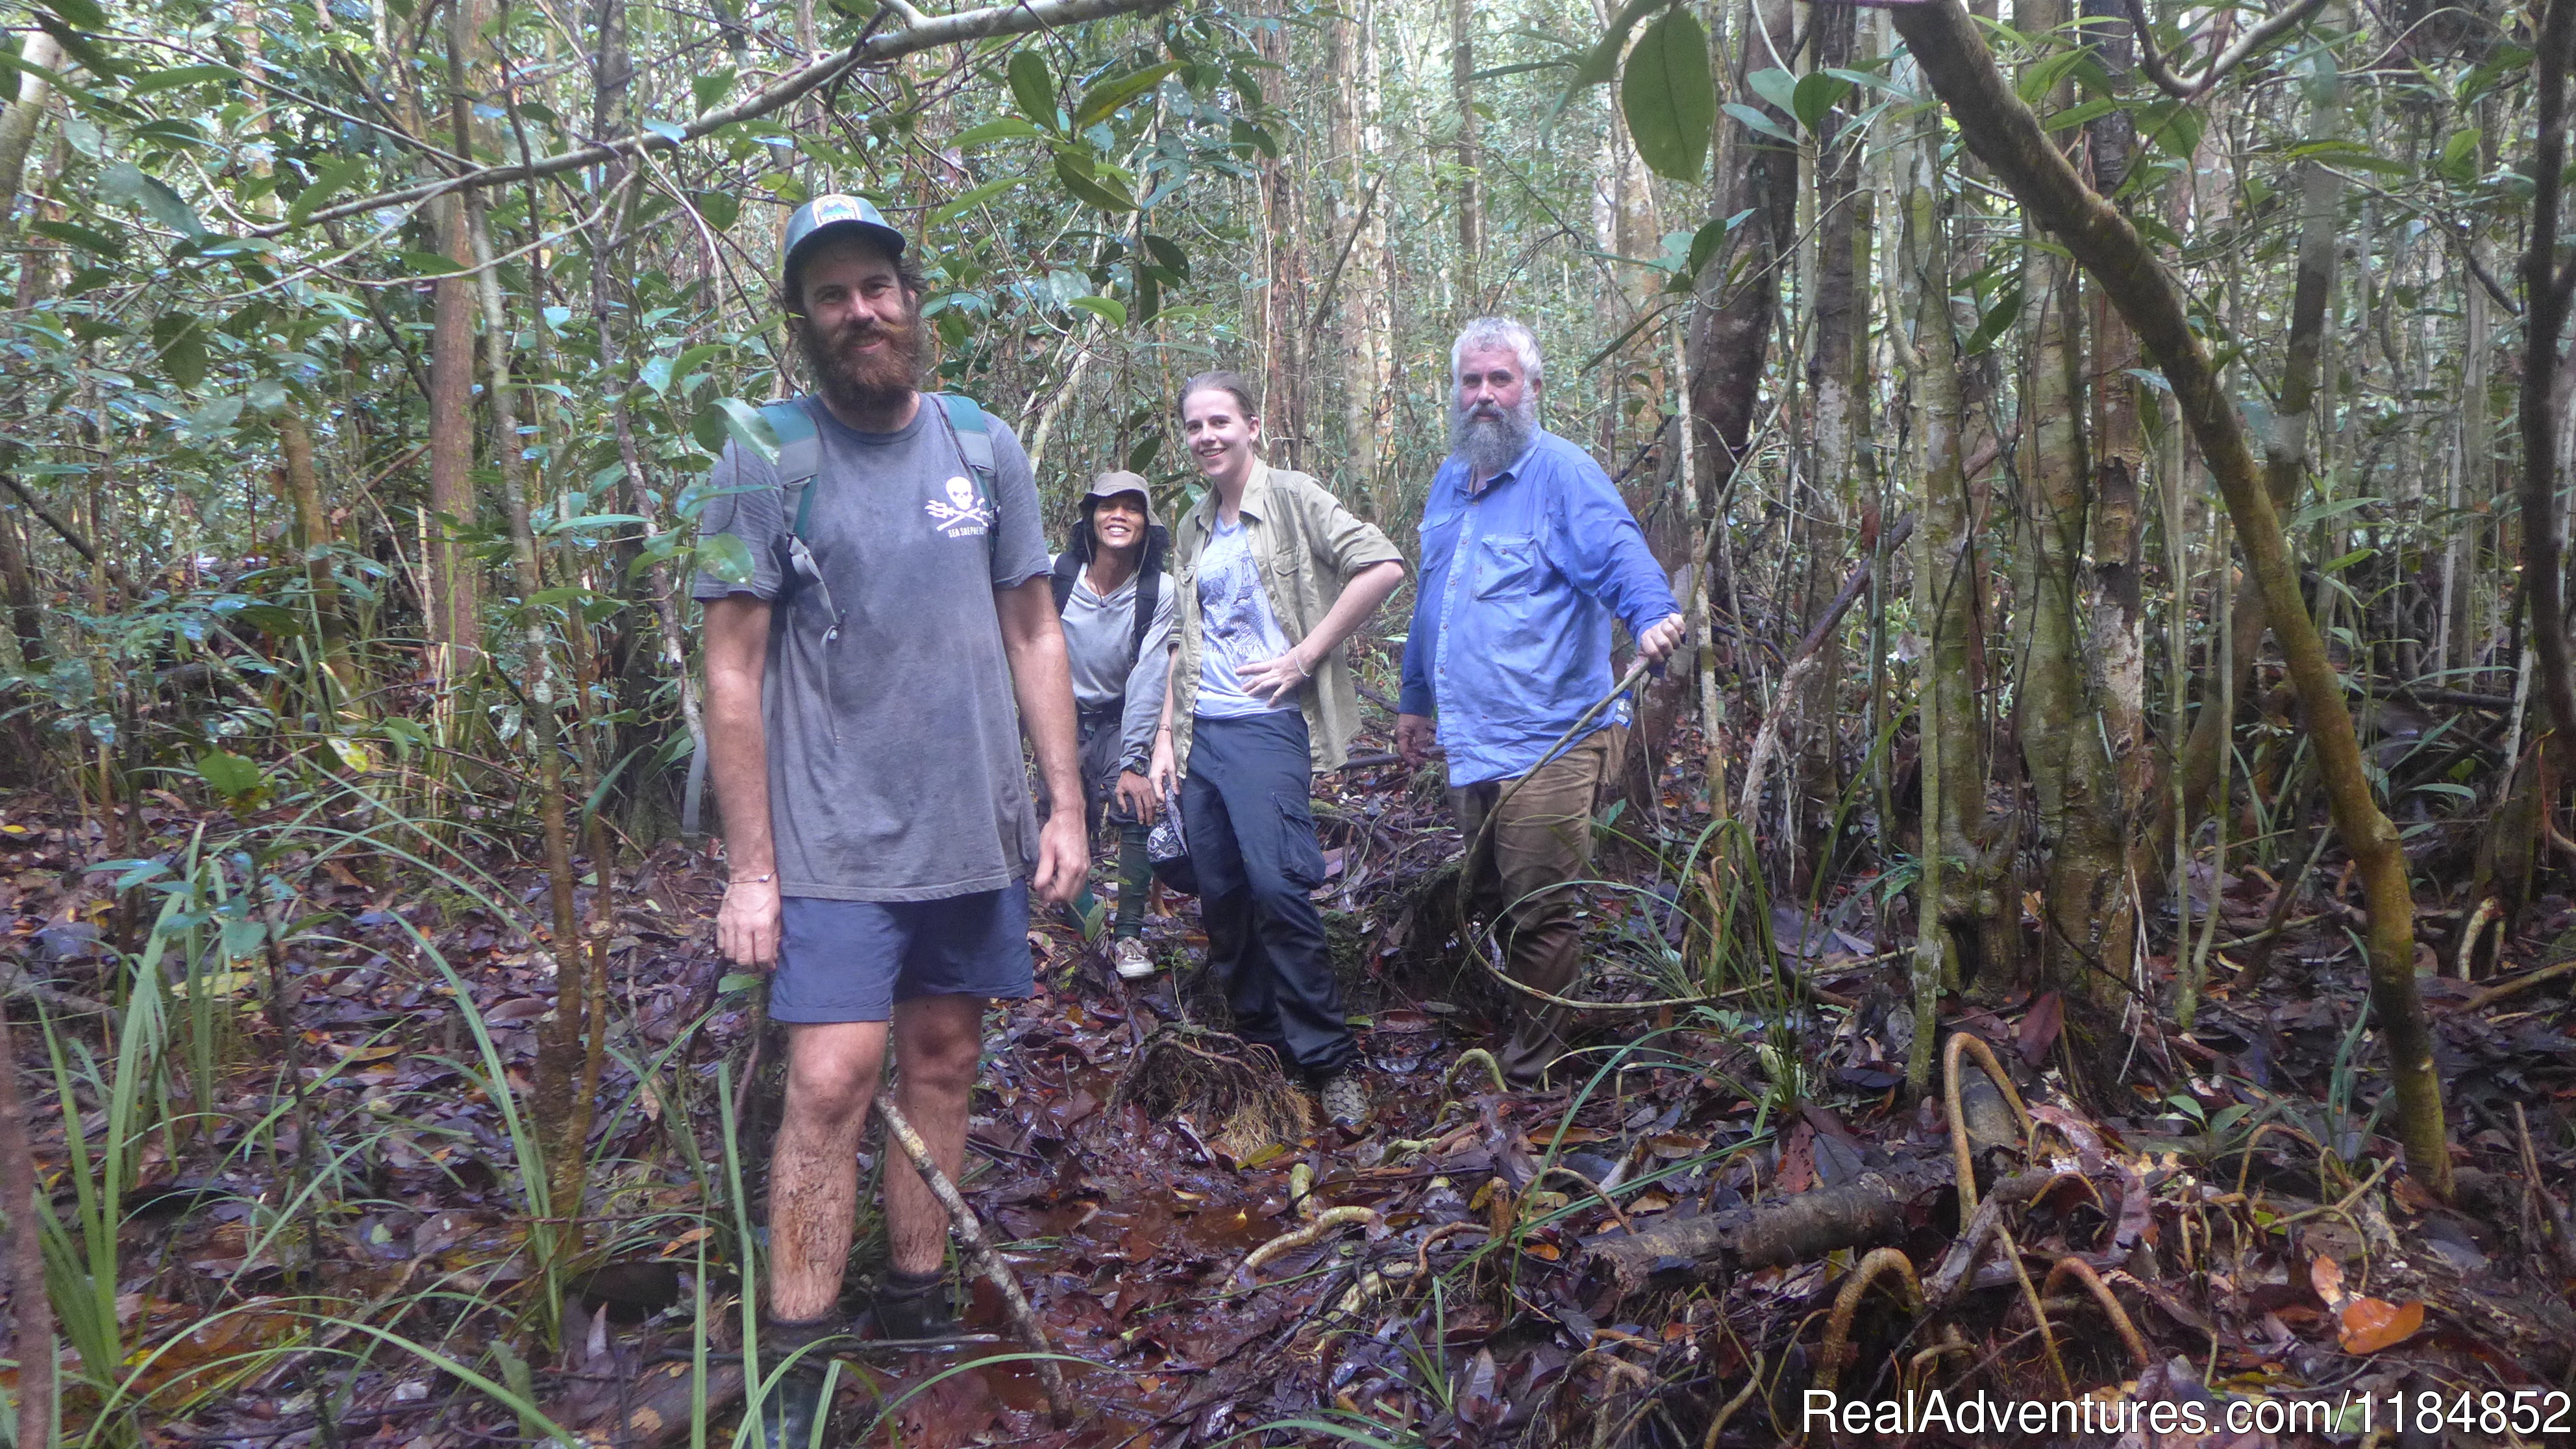 Trekking in the Sebangau National Park wildlife spotting